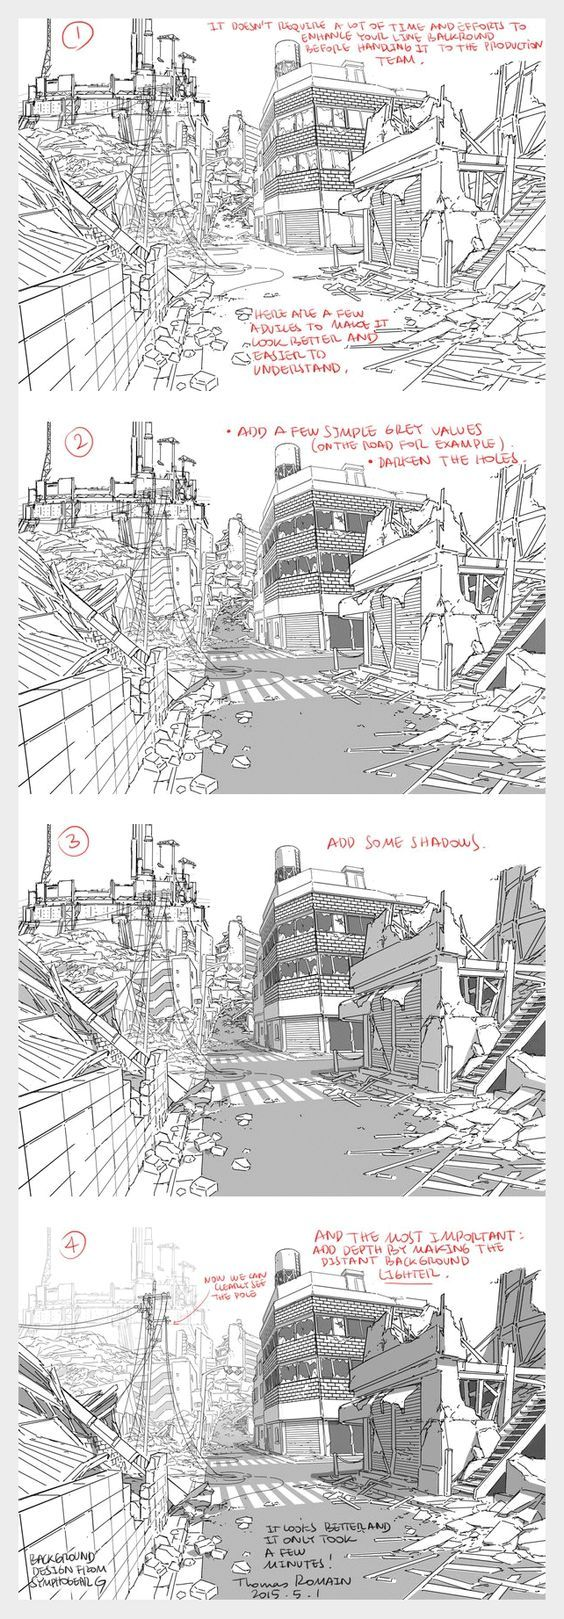 How to enhance a background - by Thomas Romain (one of the few foreigners working in the anime industry in Japan):